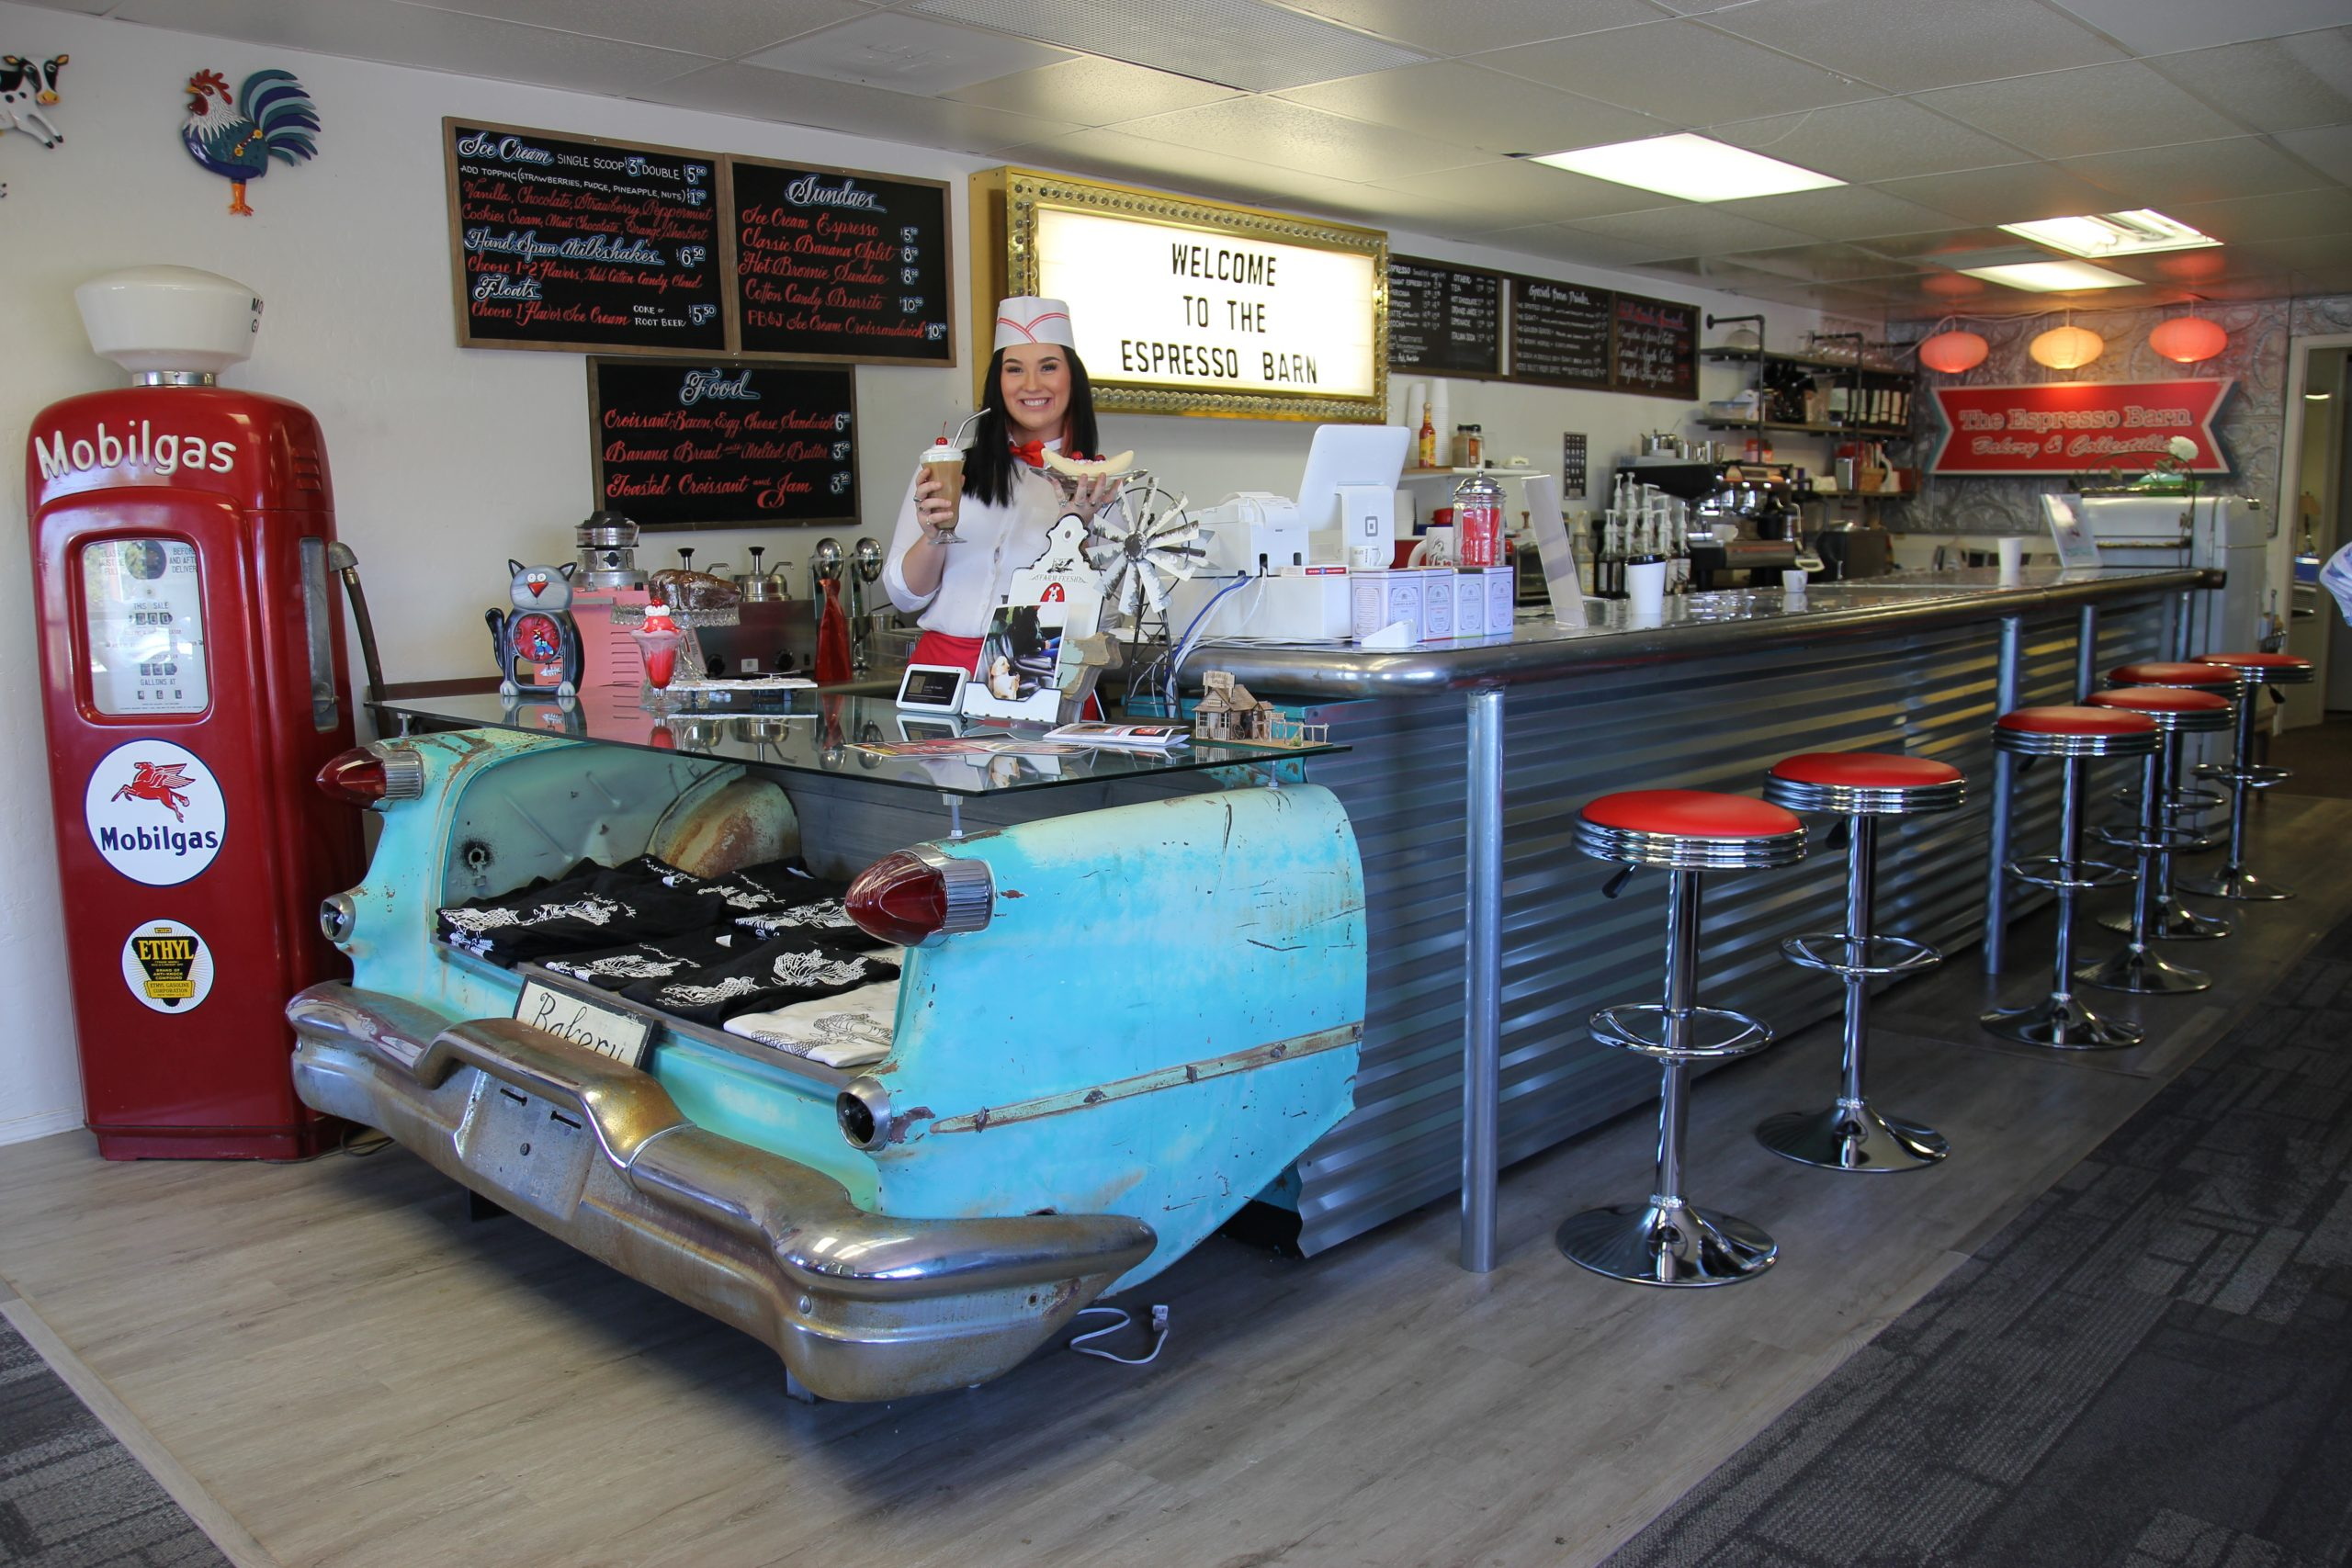 New Christmas Experience In Prescott 2020 Prescott has a new 50's Style Soda Fountain and Ice Cream Parlor